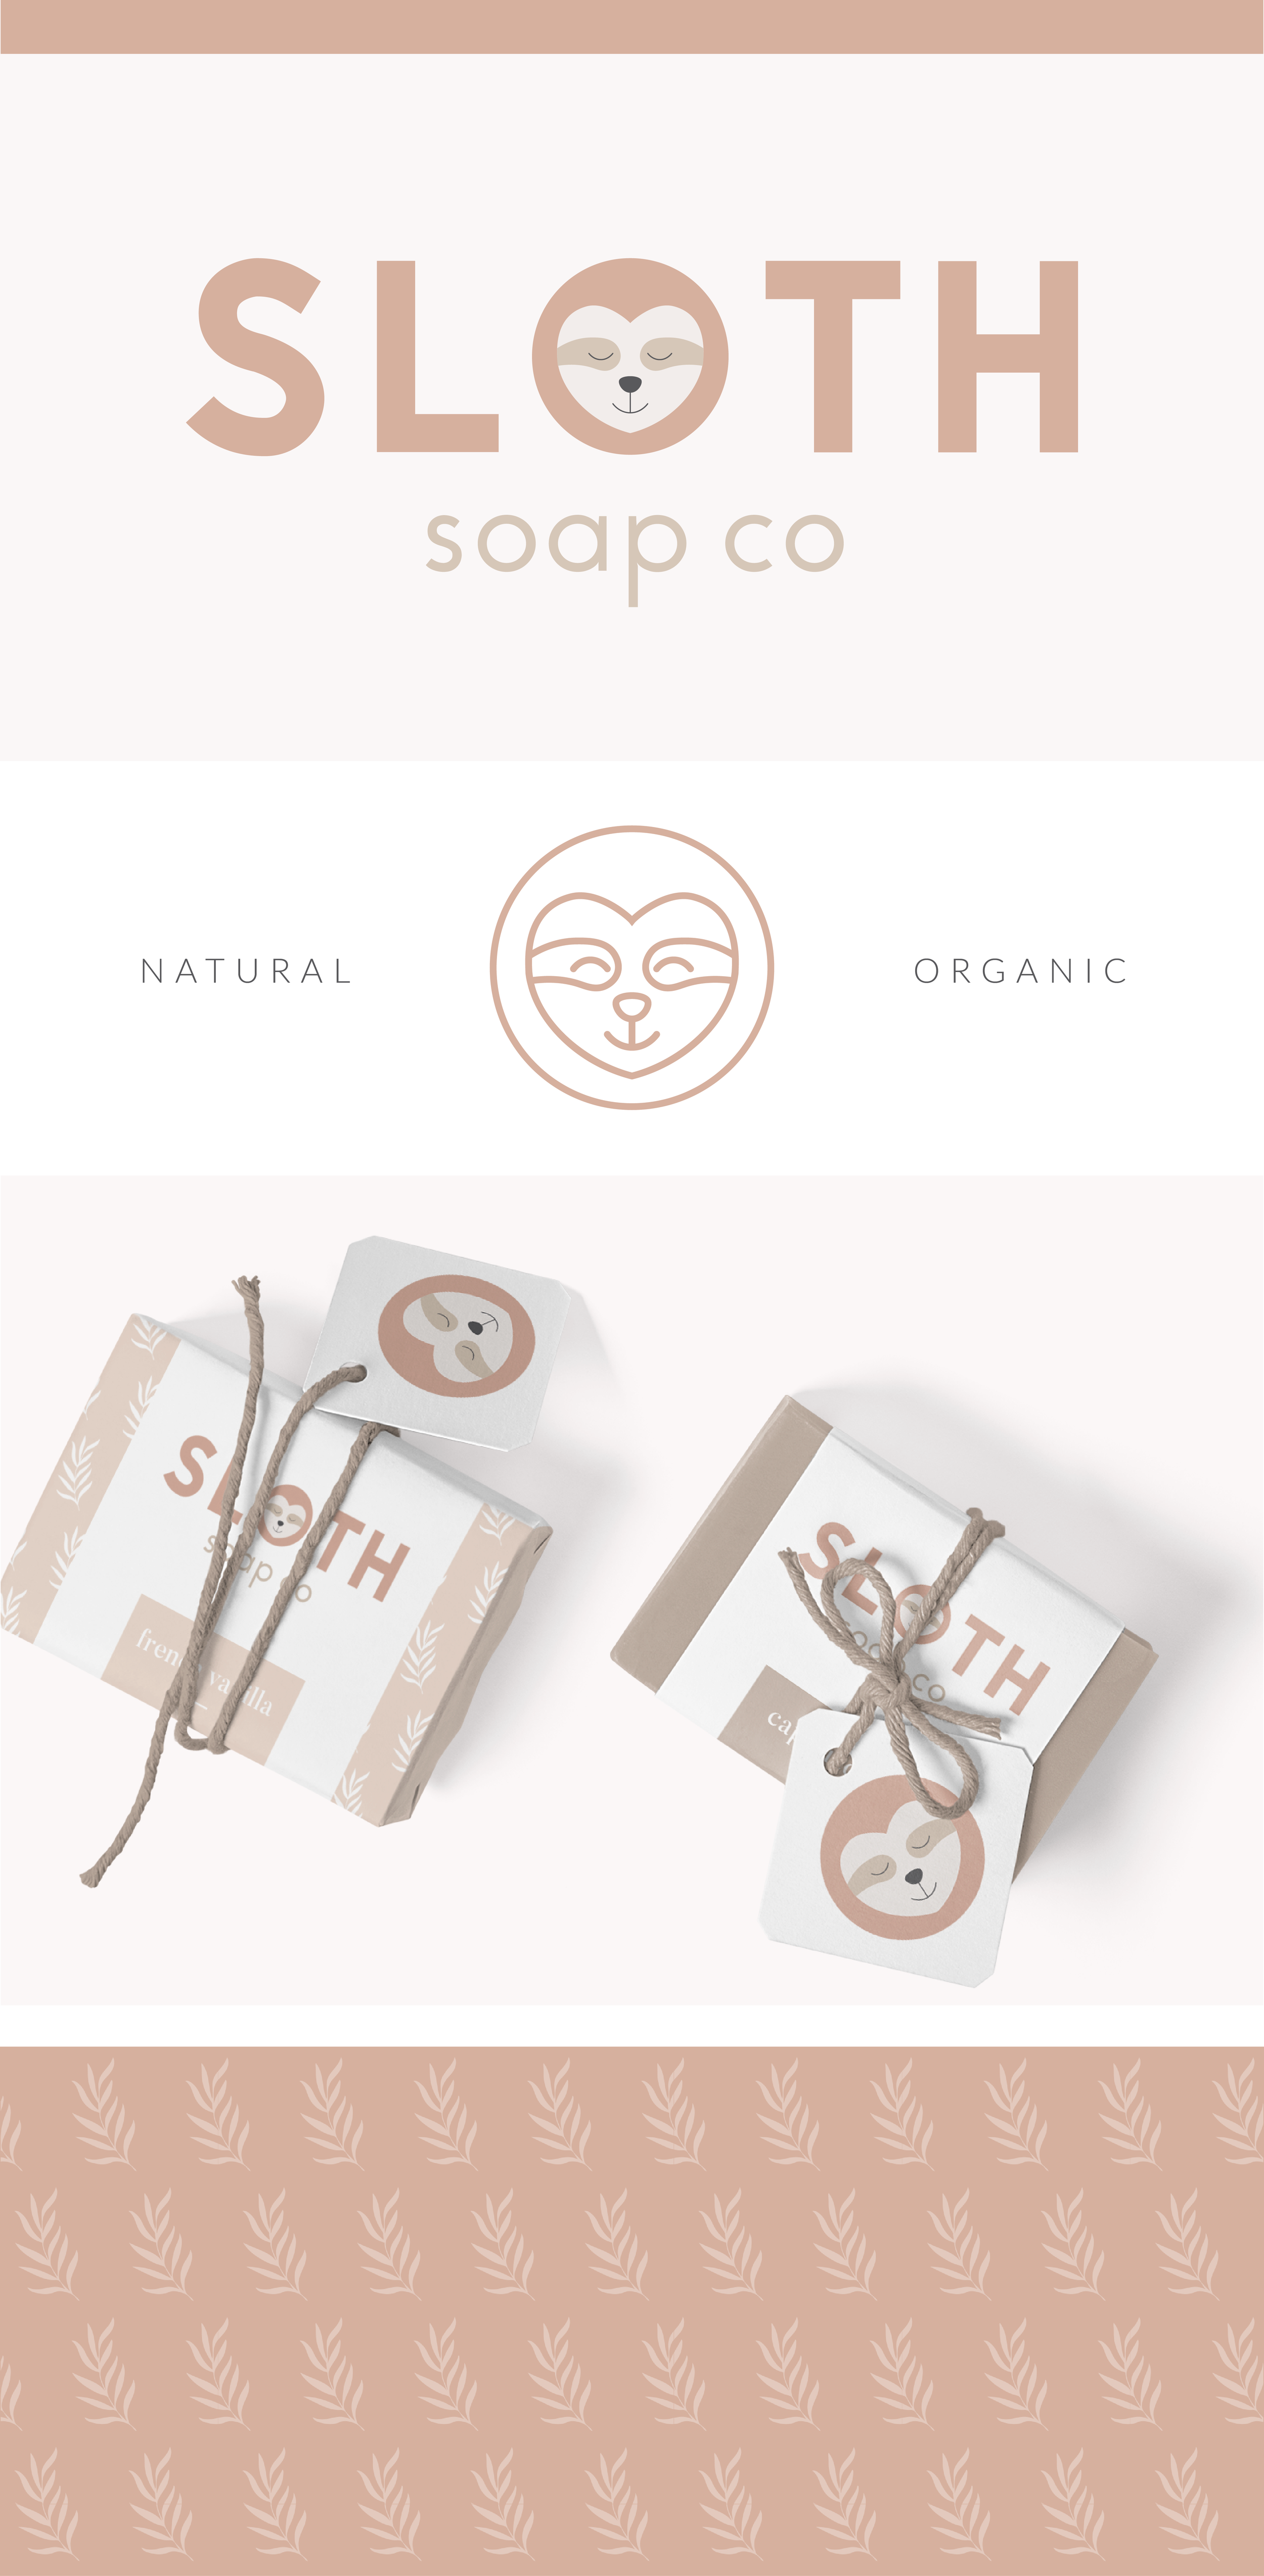 Sloth Soap Co branding designed by Amari Creative.png